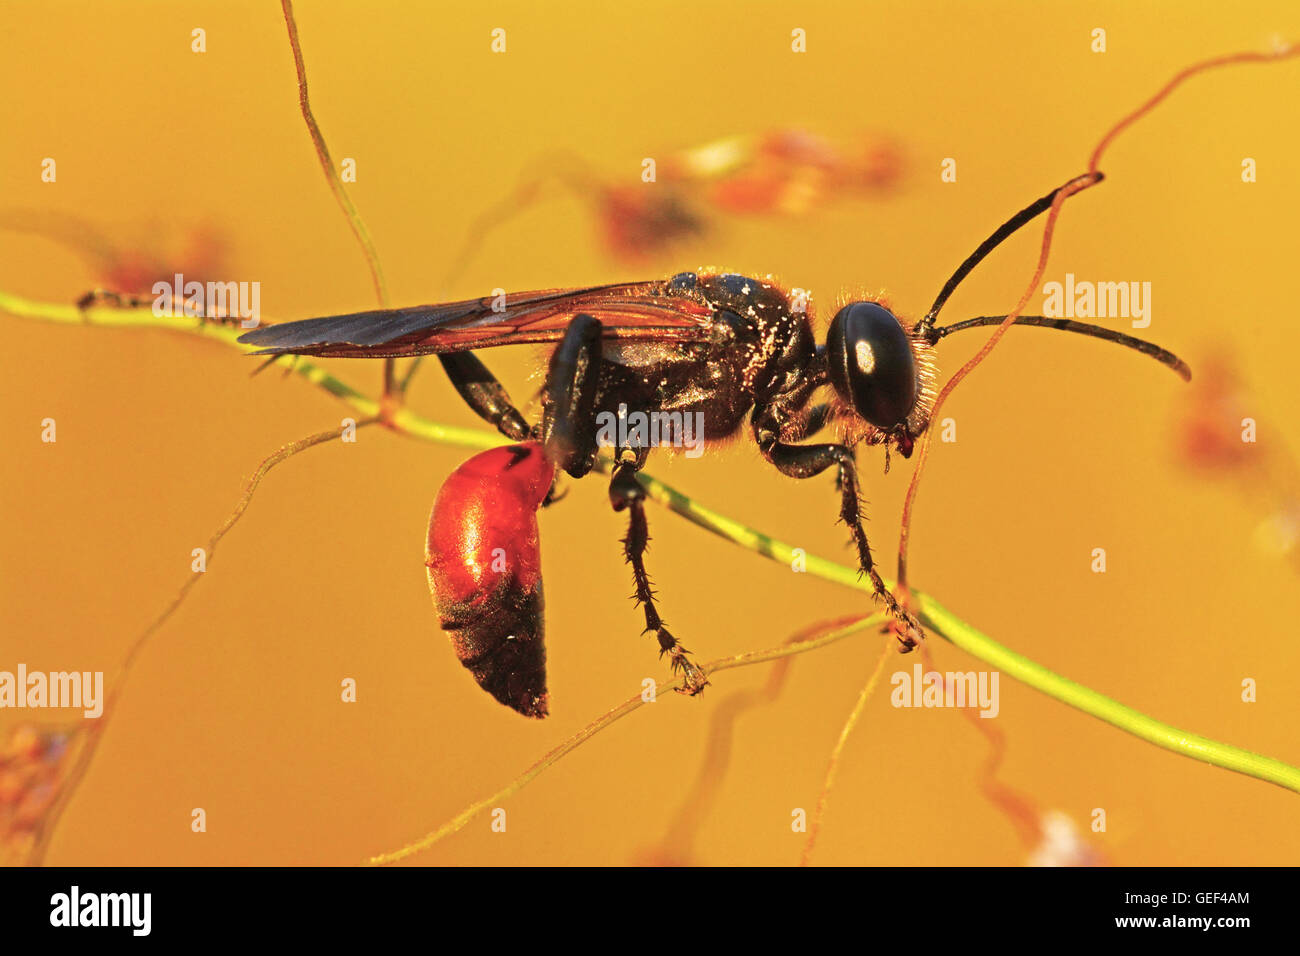 Wasp on stem - sleeping position - Stock Image